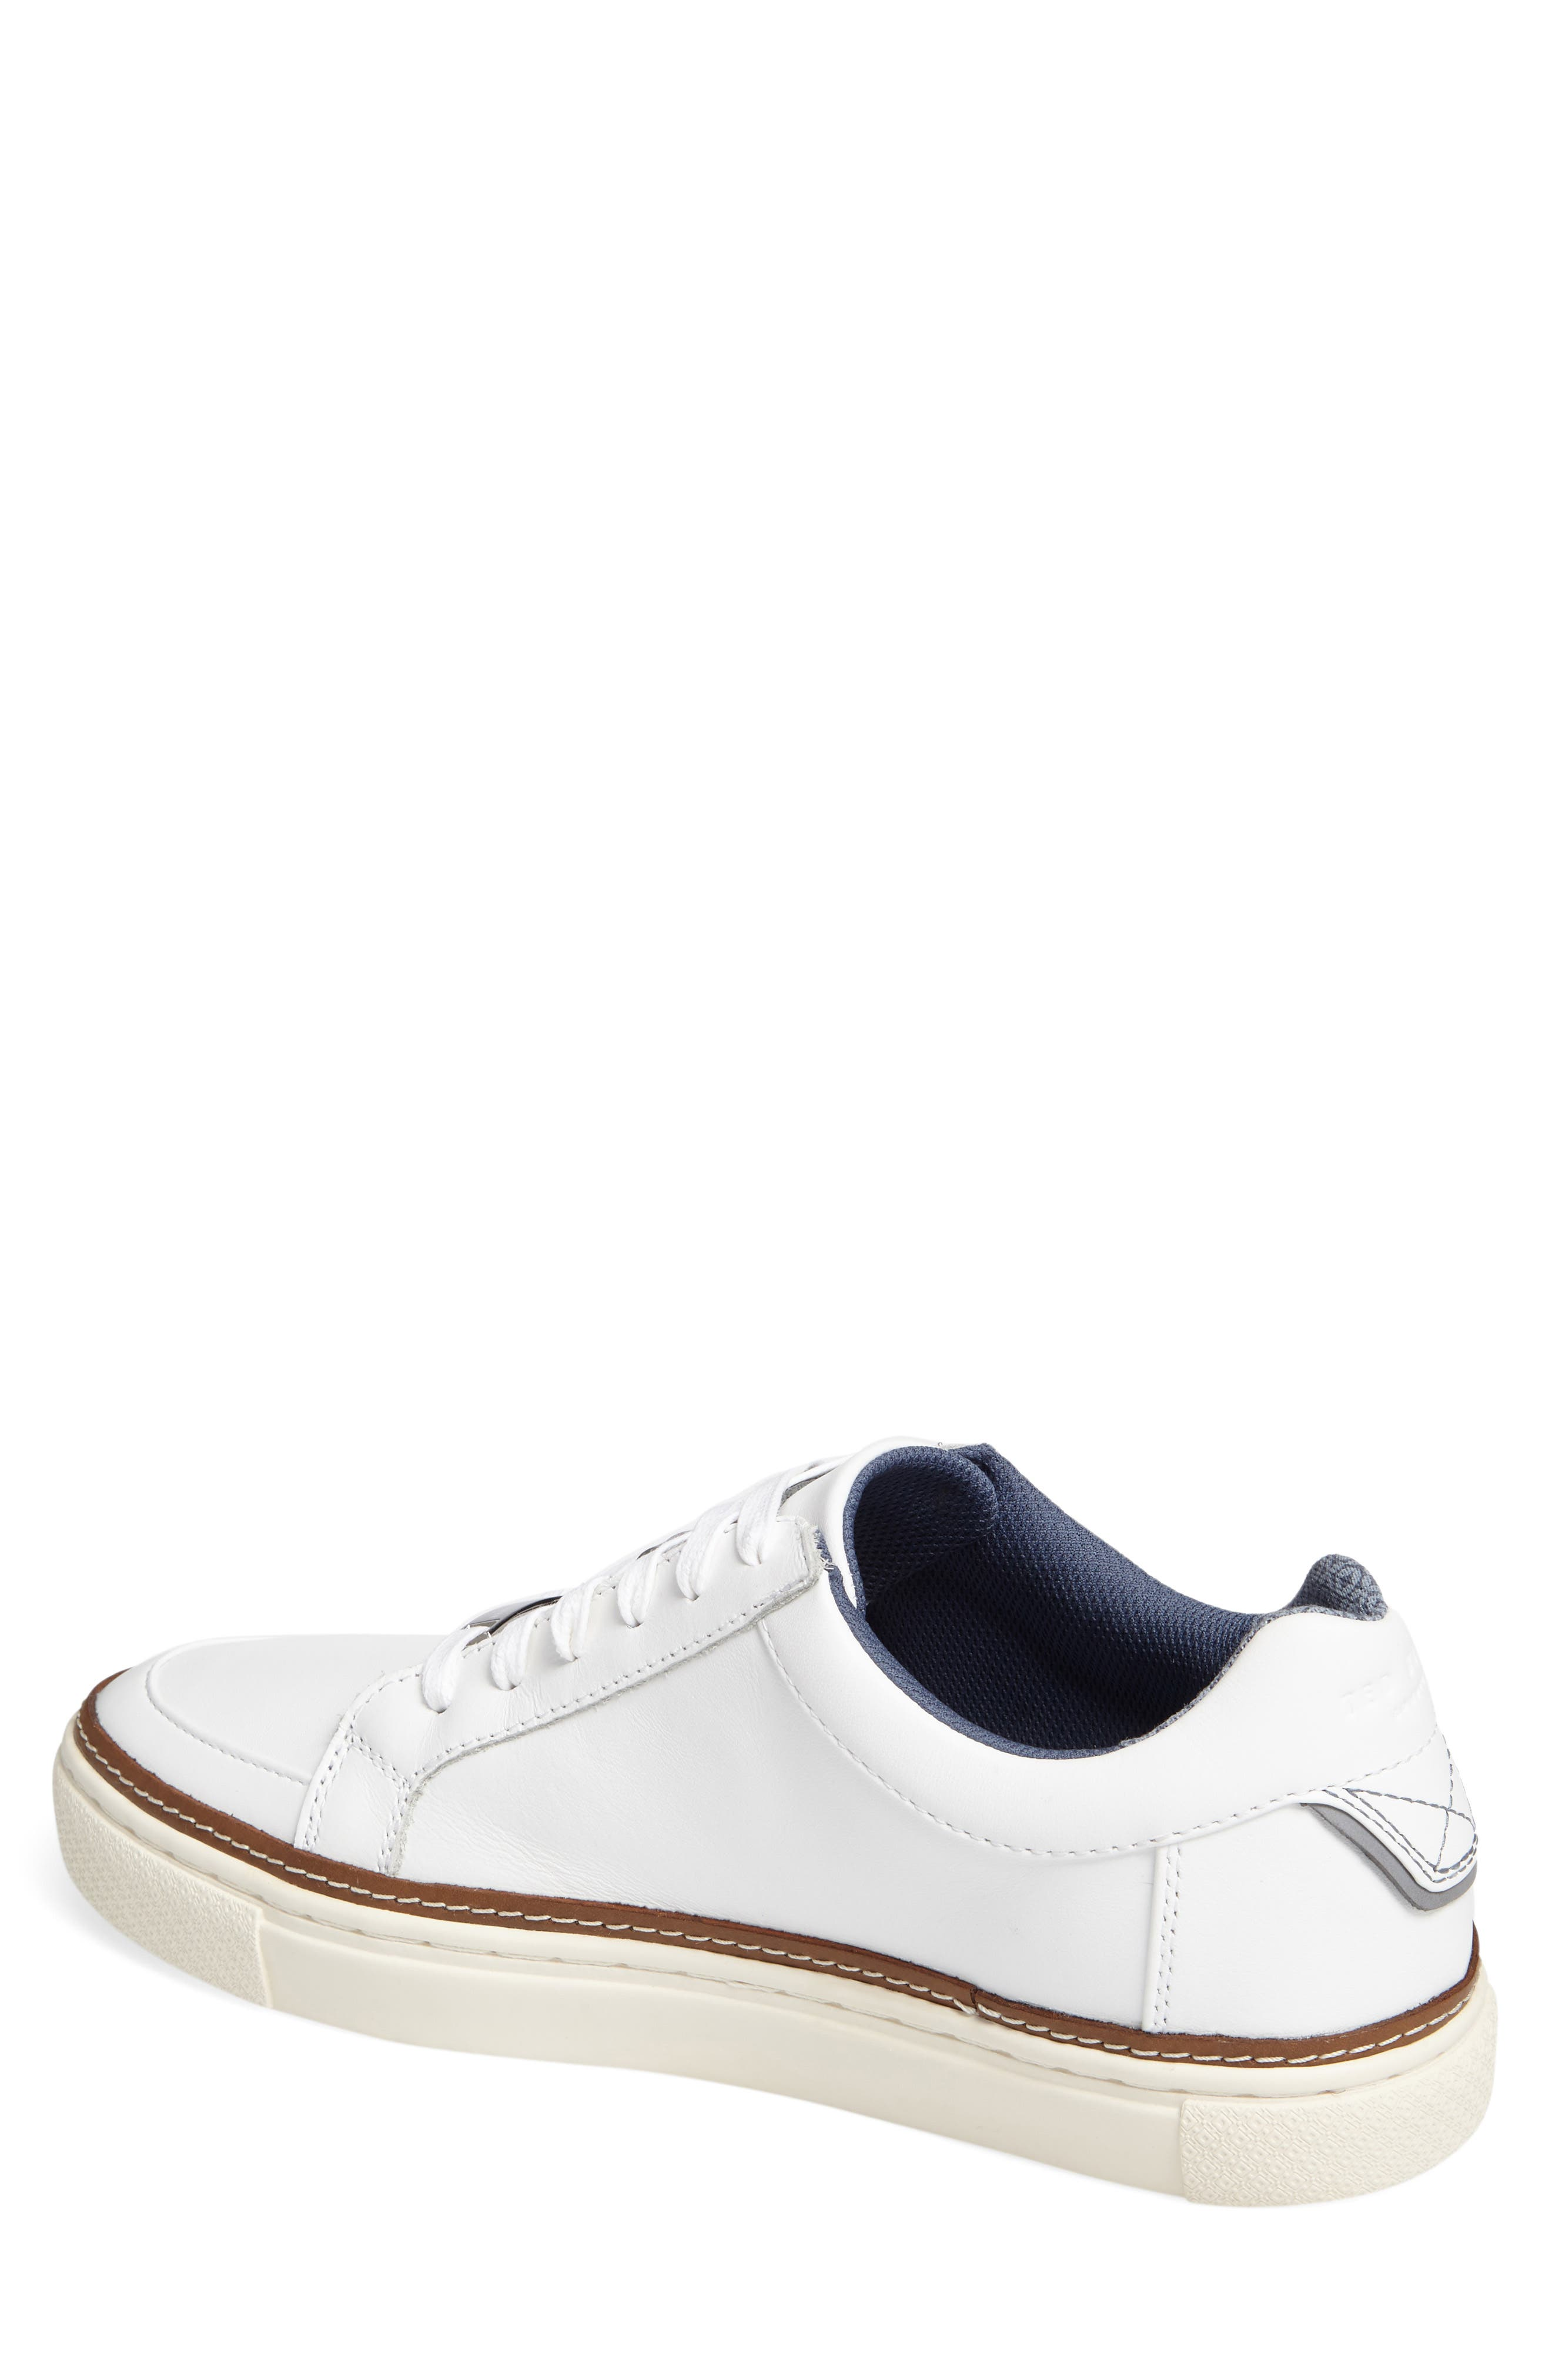 ,                             Rouu Sneaker,                             Alternate thumbnail 6, color,                             152